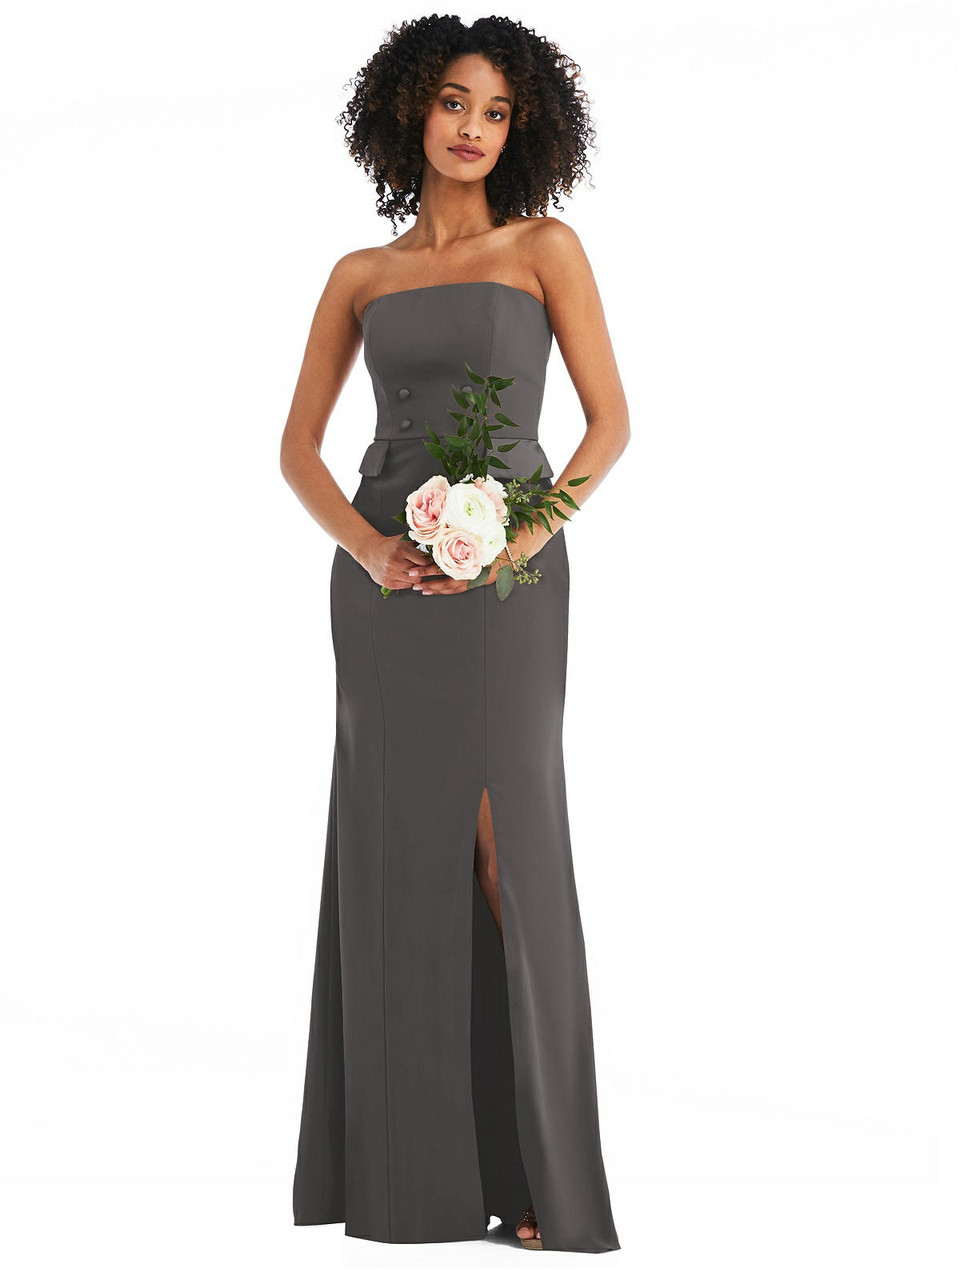 After Six Bridesmaid Dress Style 6841 - Crepe